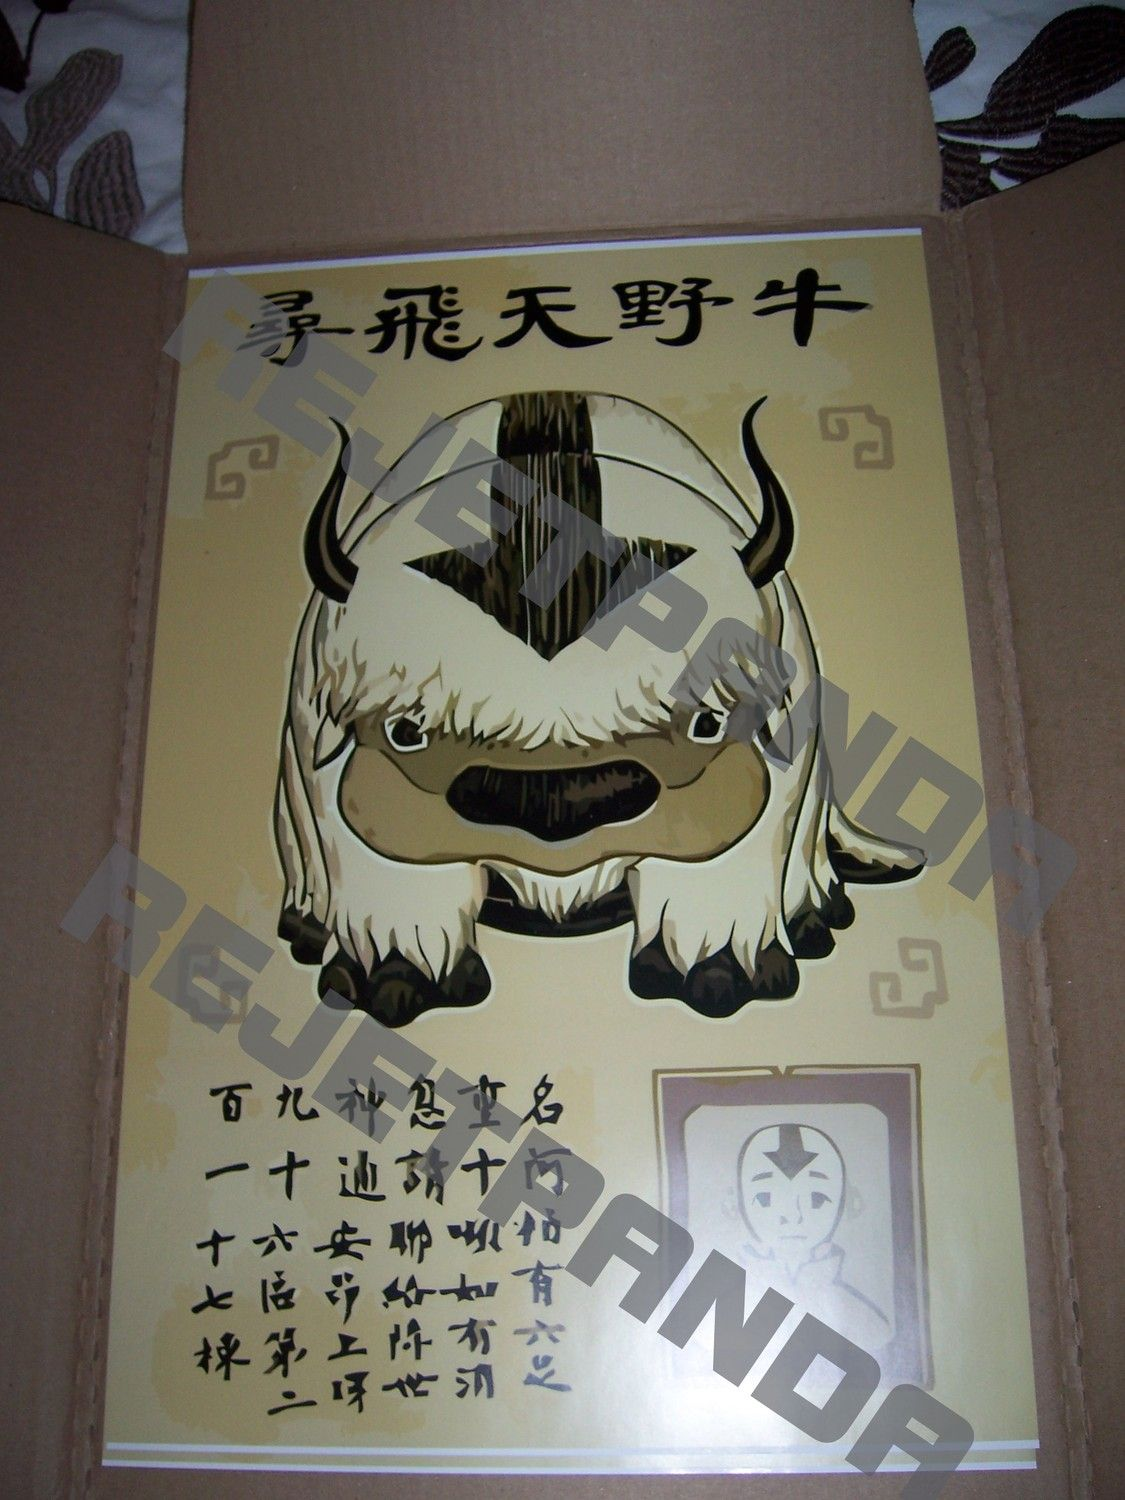 Avatar The Last Airbender Lost Appa Wanted Poster 14 99 Via Etsy So Cute Avatar The Last Airbender The Last Airbender The Last Avatar